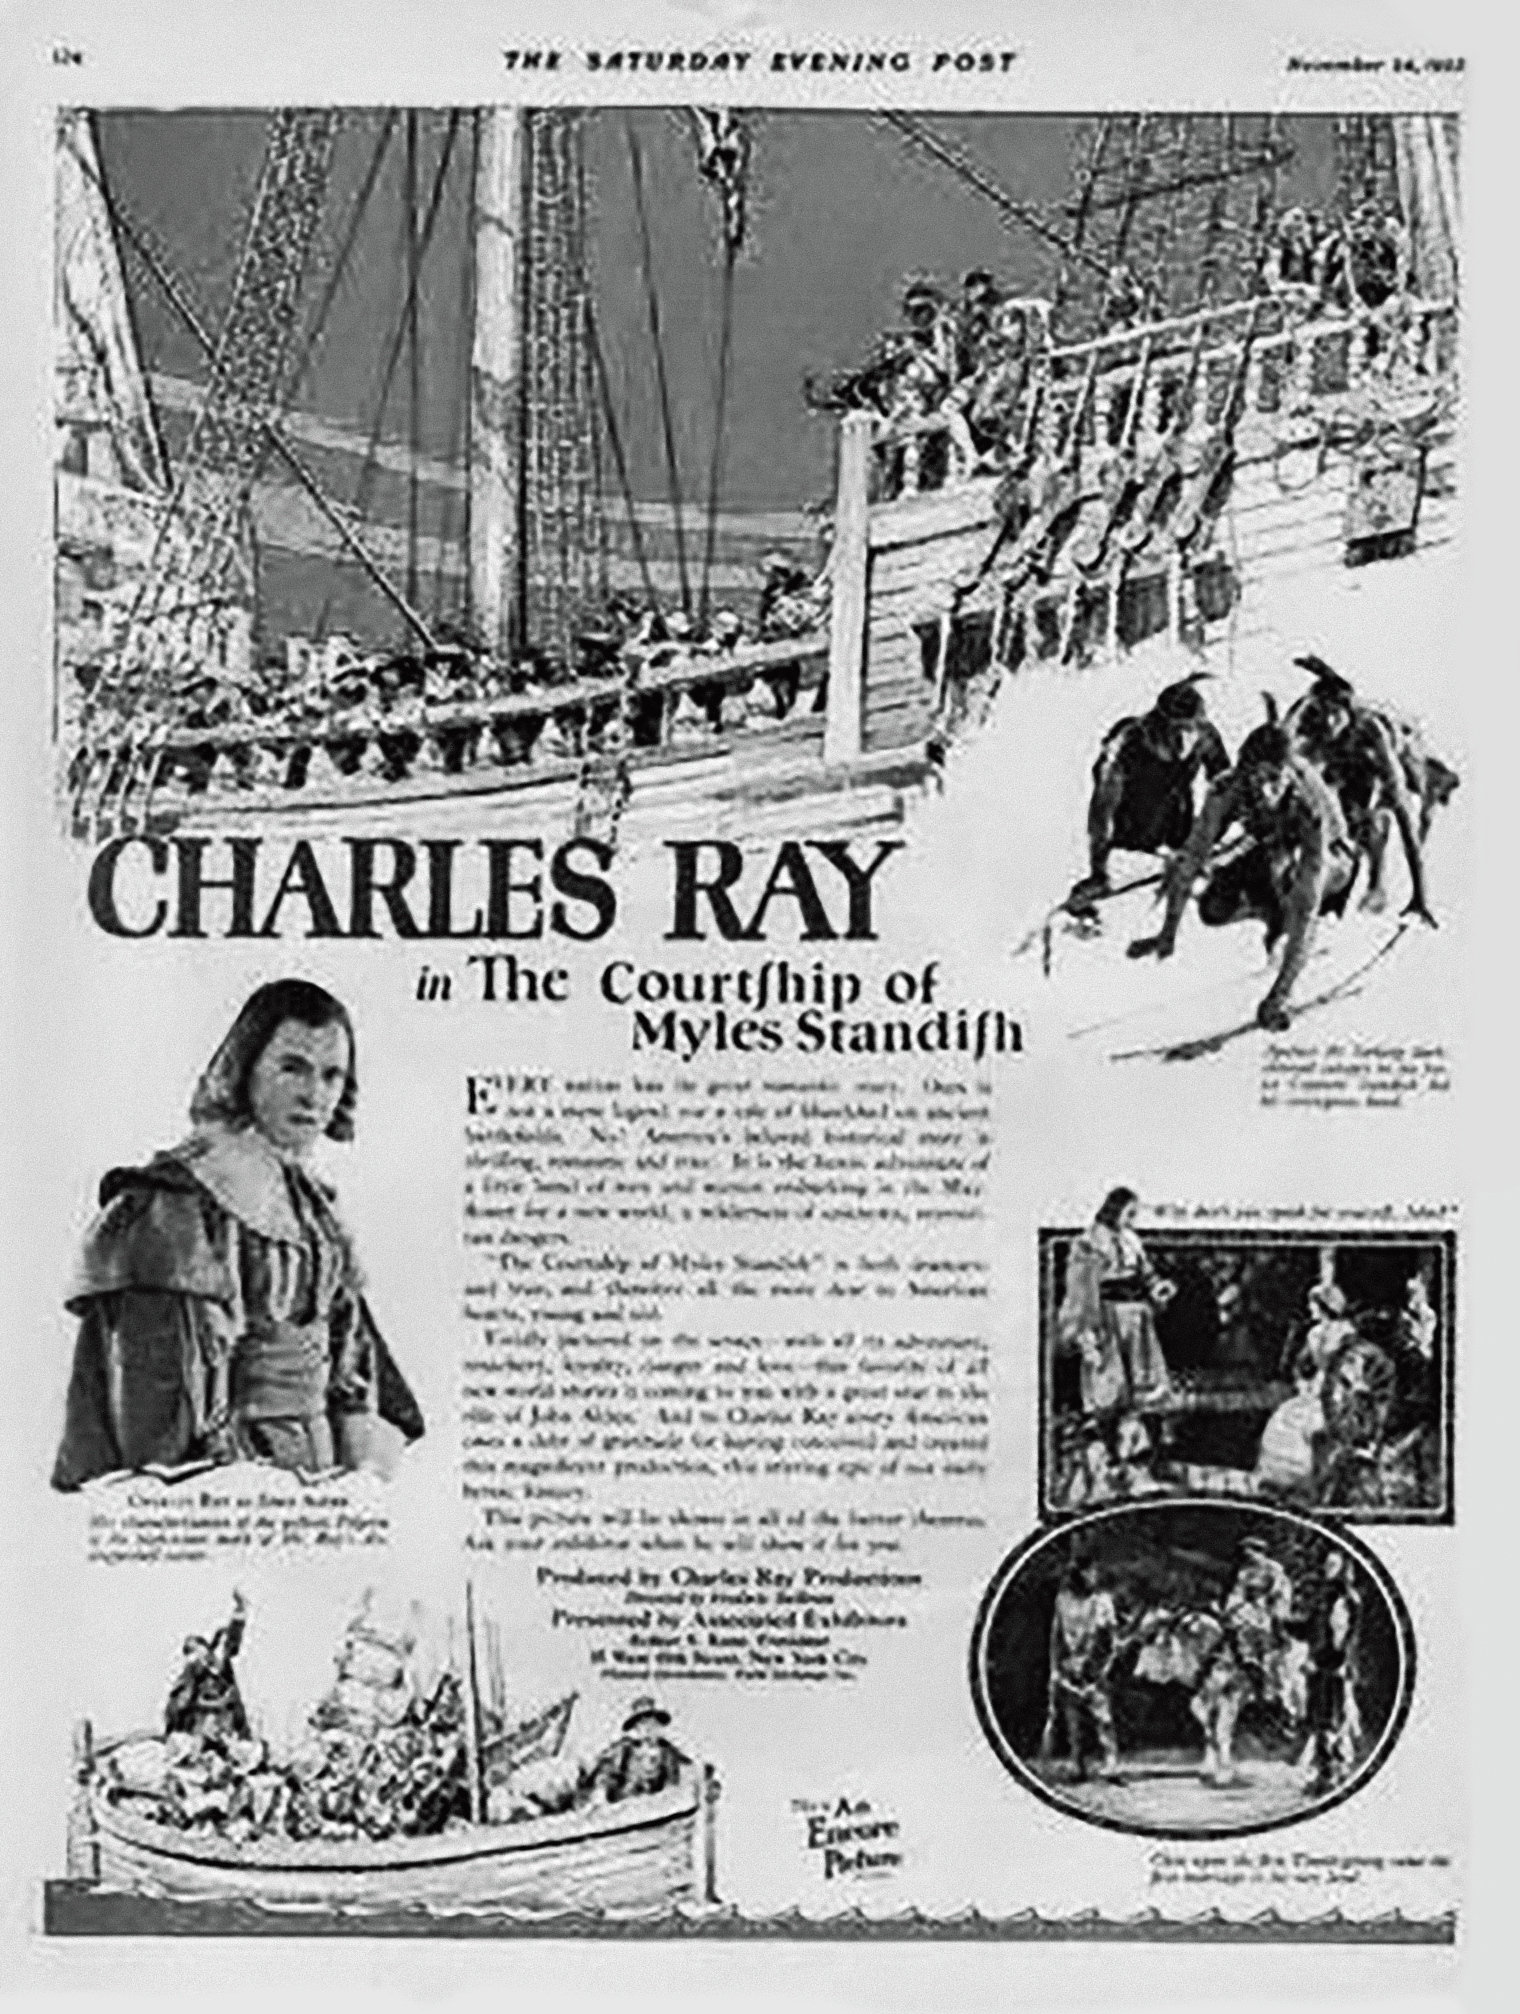 CHARLES RAY PRODUCTIONS, 1923